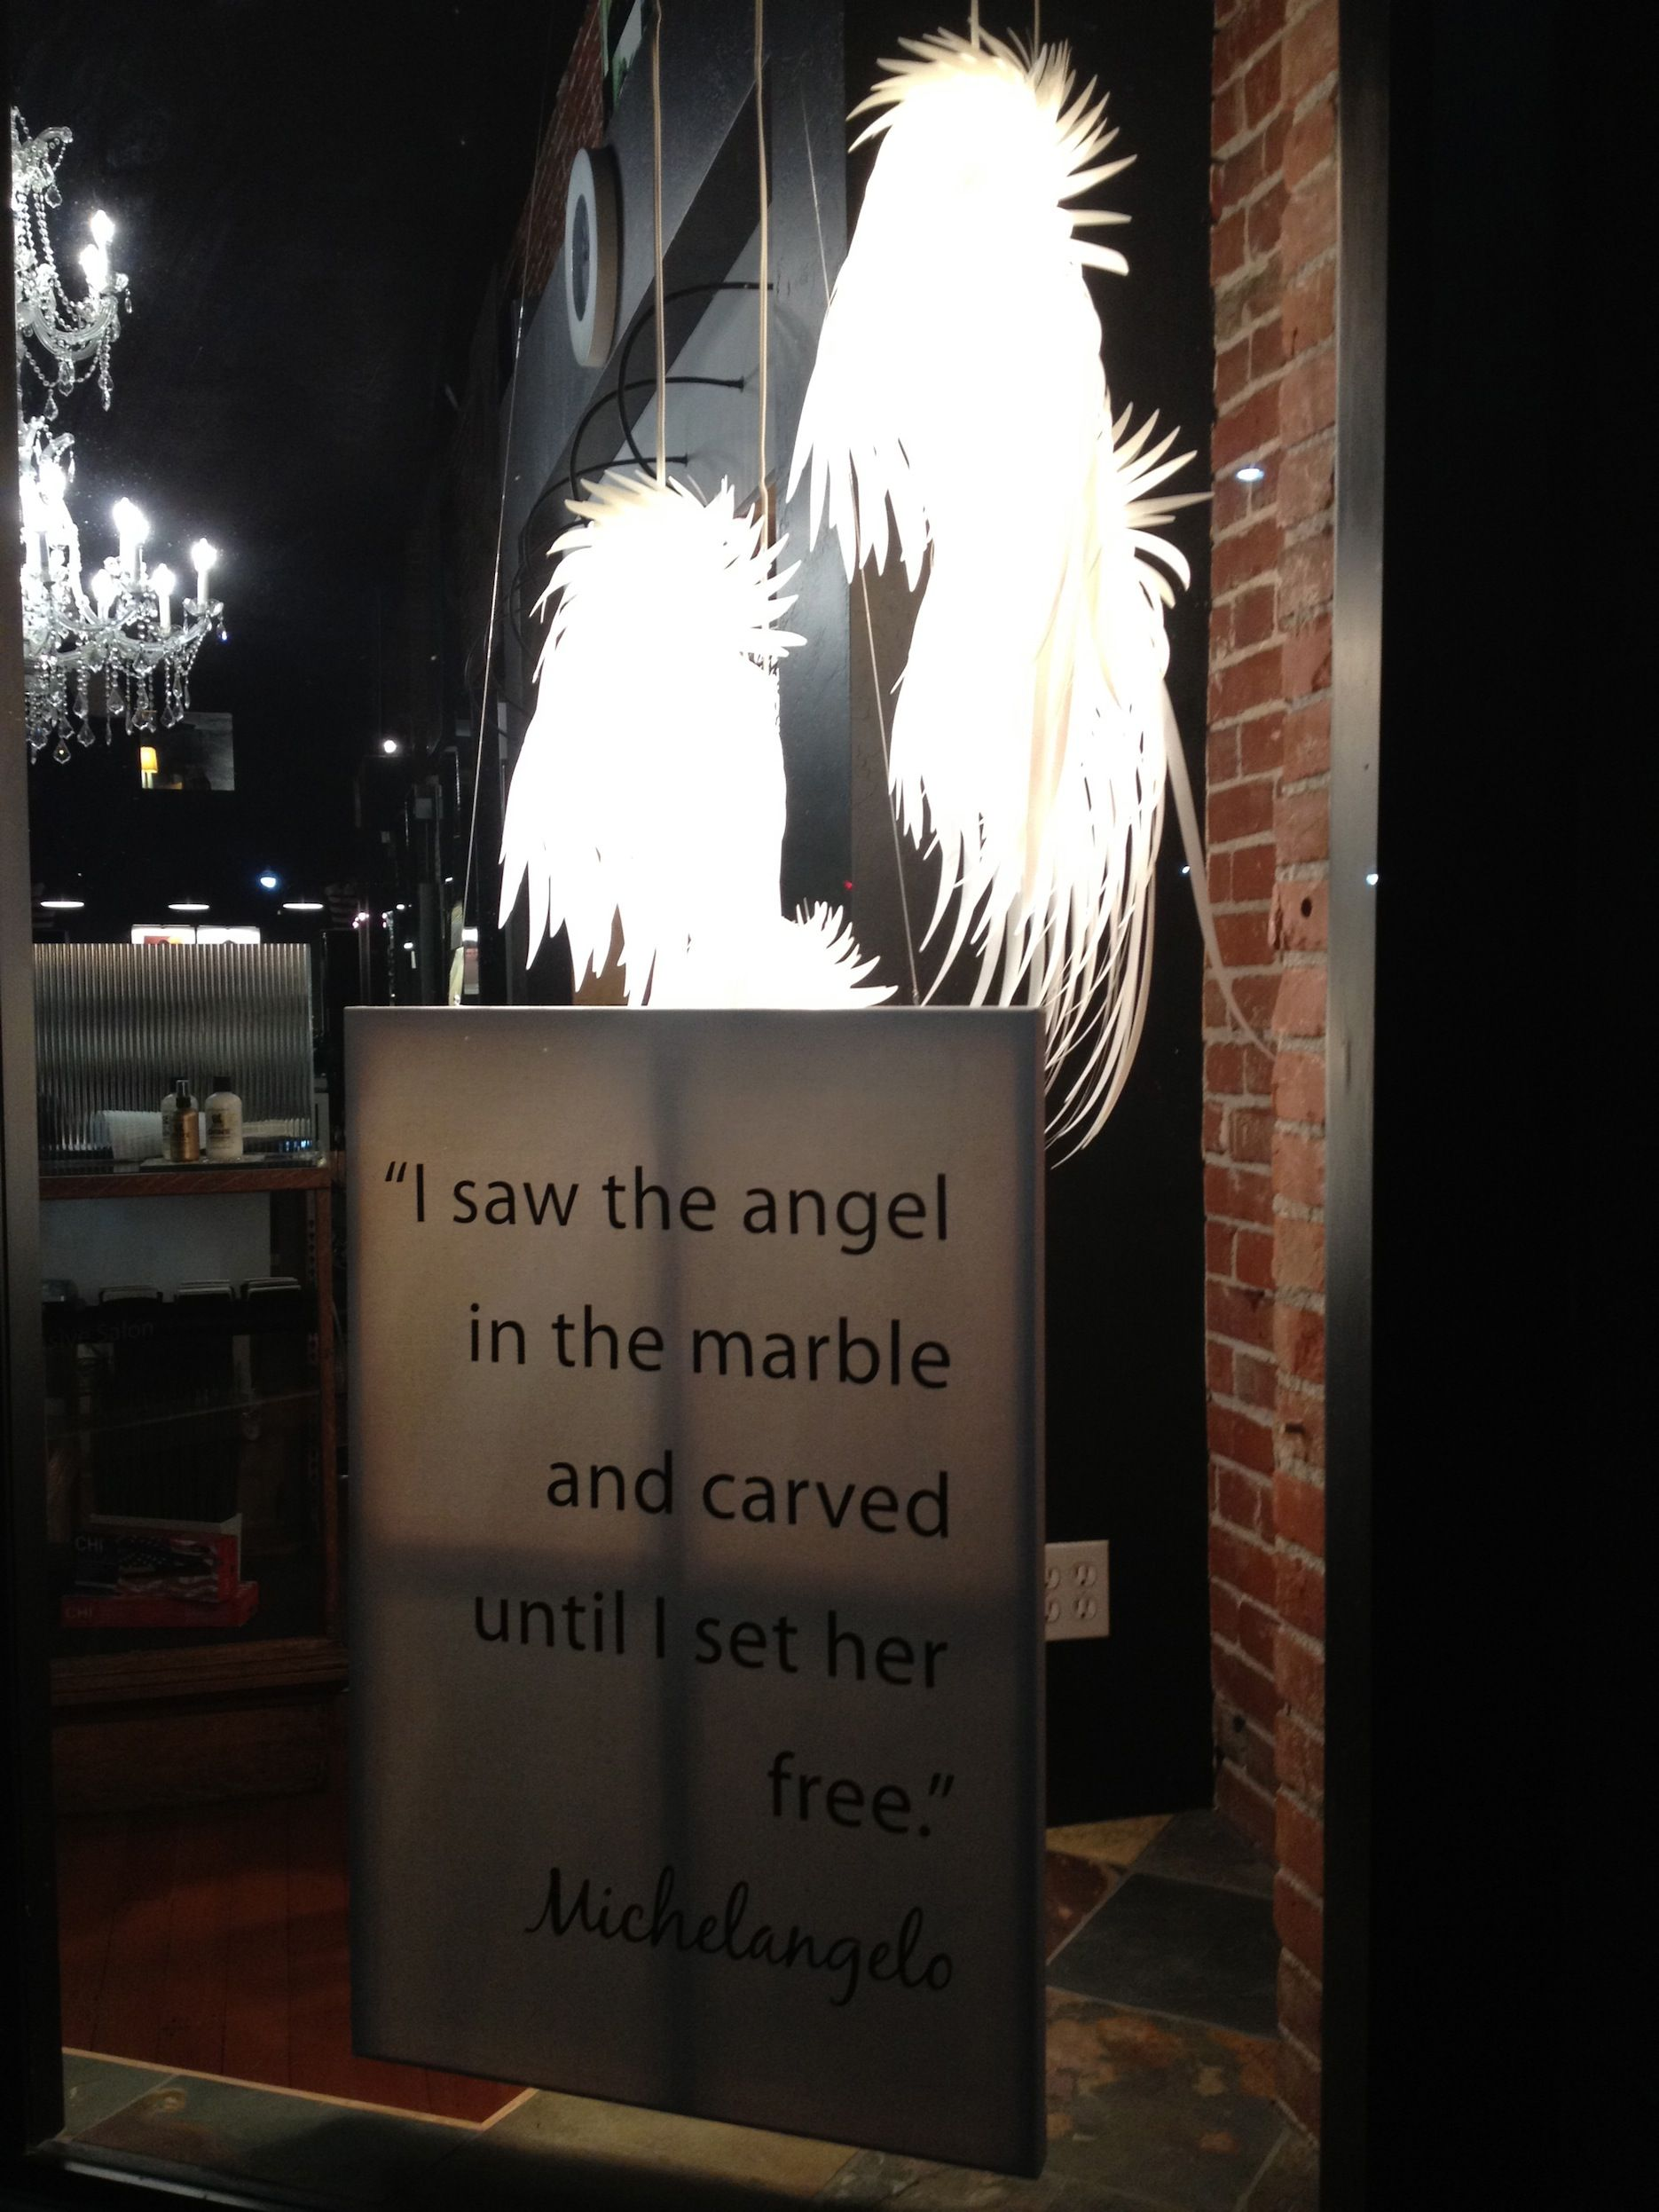 Found this quote in downtown Walla Walla...